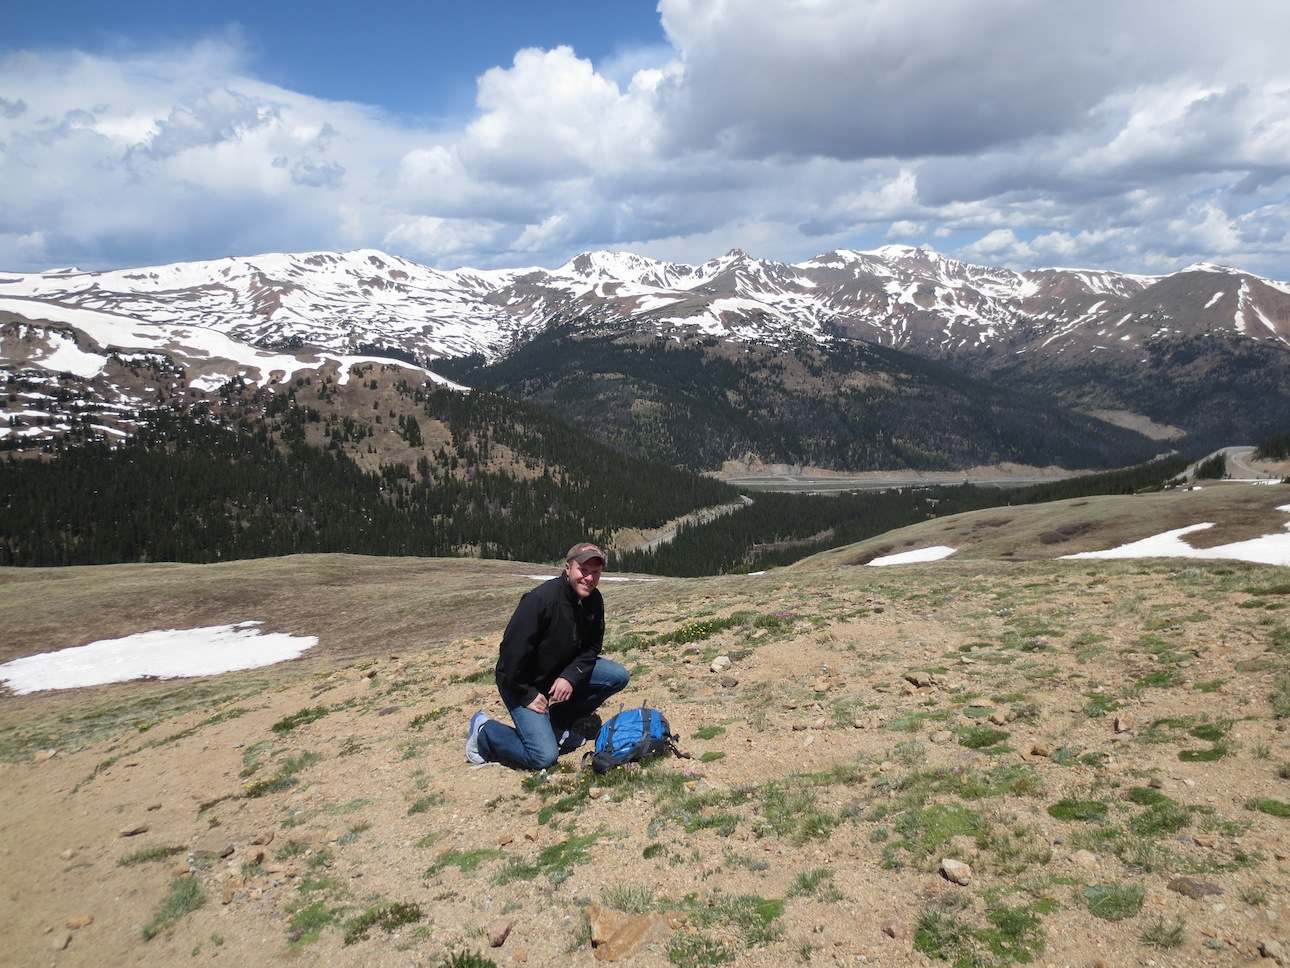 Matt Makai kneeling in front of snow capped mountains in the distance.